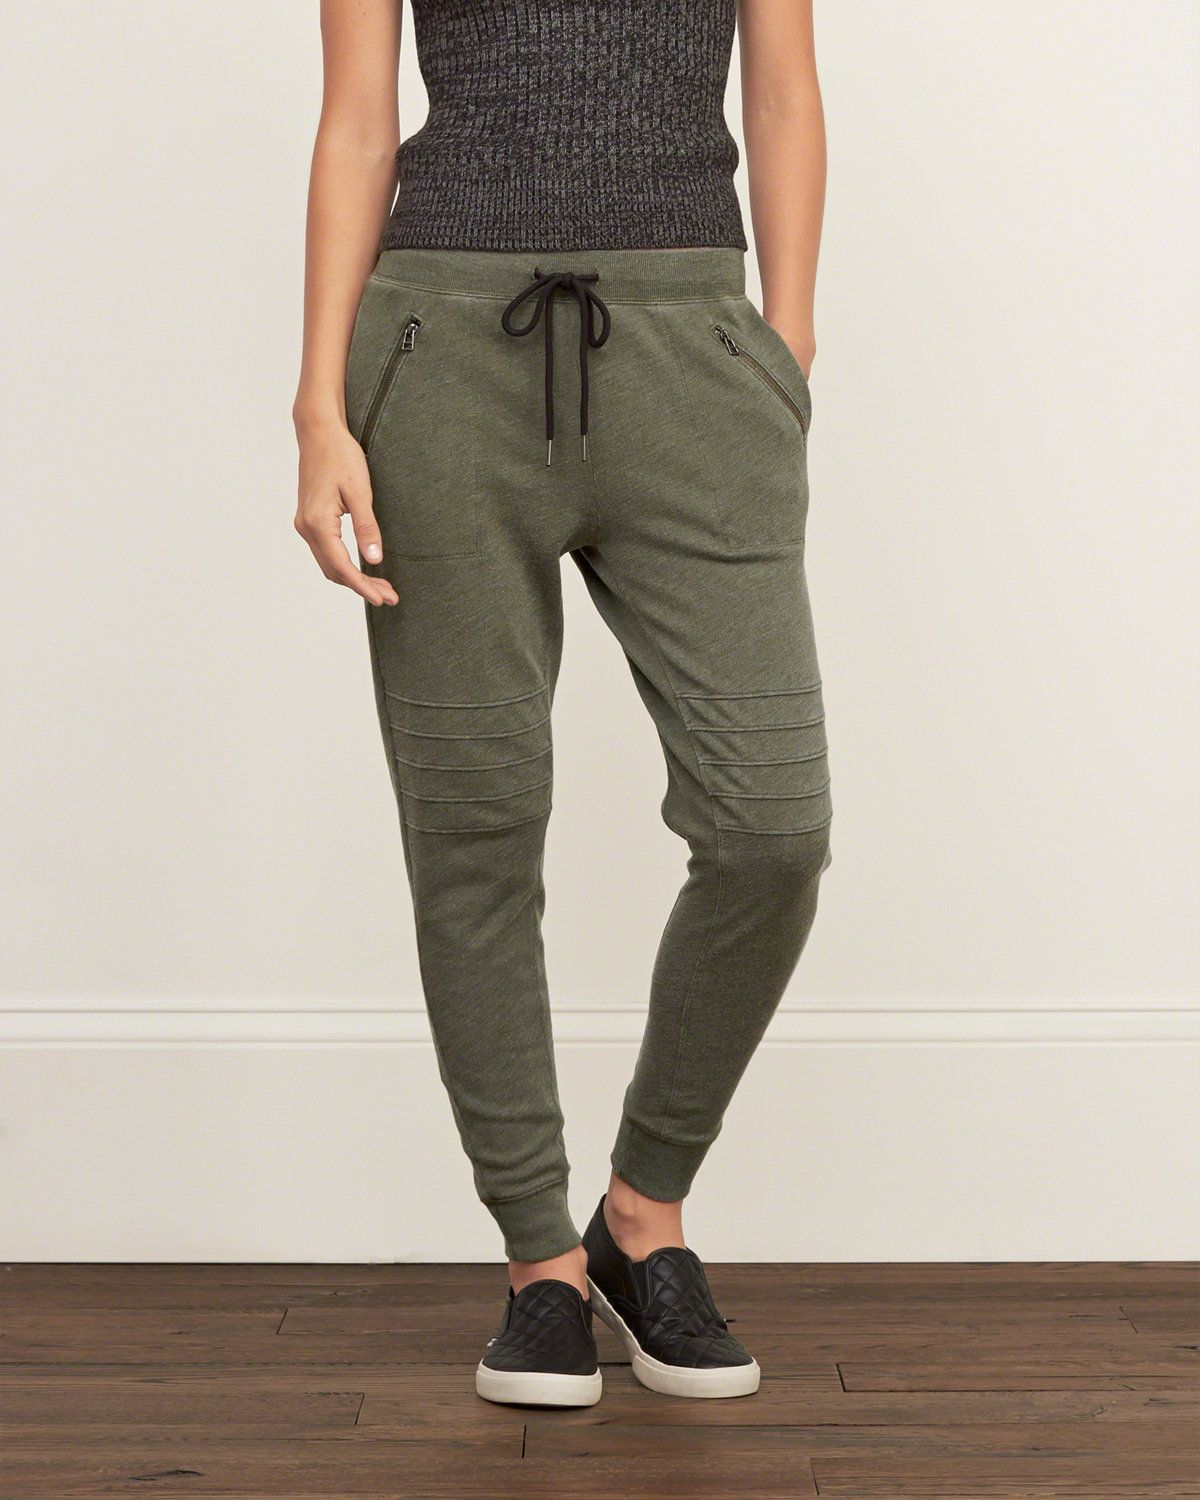 bcecb2c773c91d Womens A F Slouchy Joggers